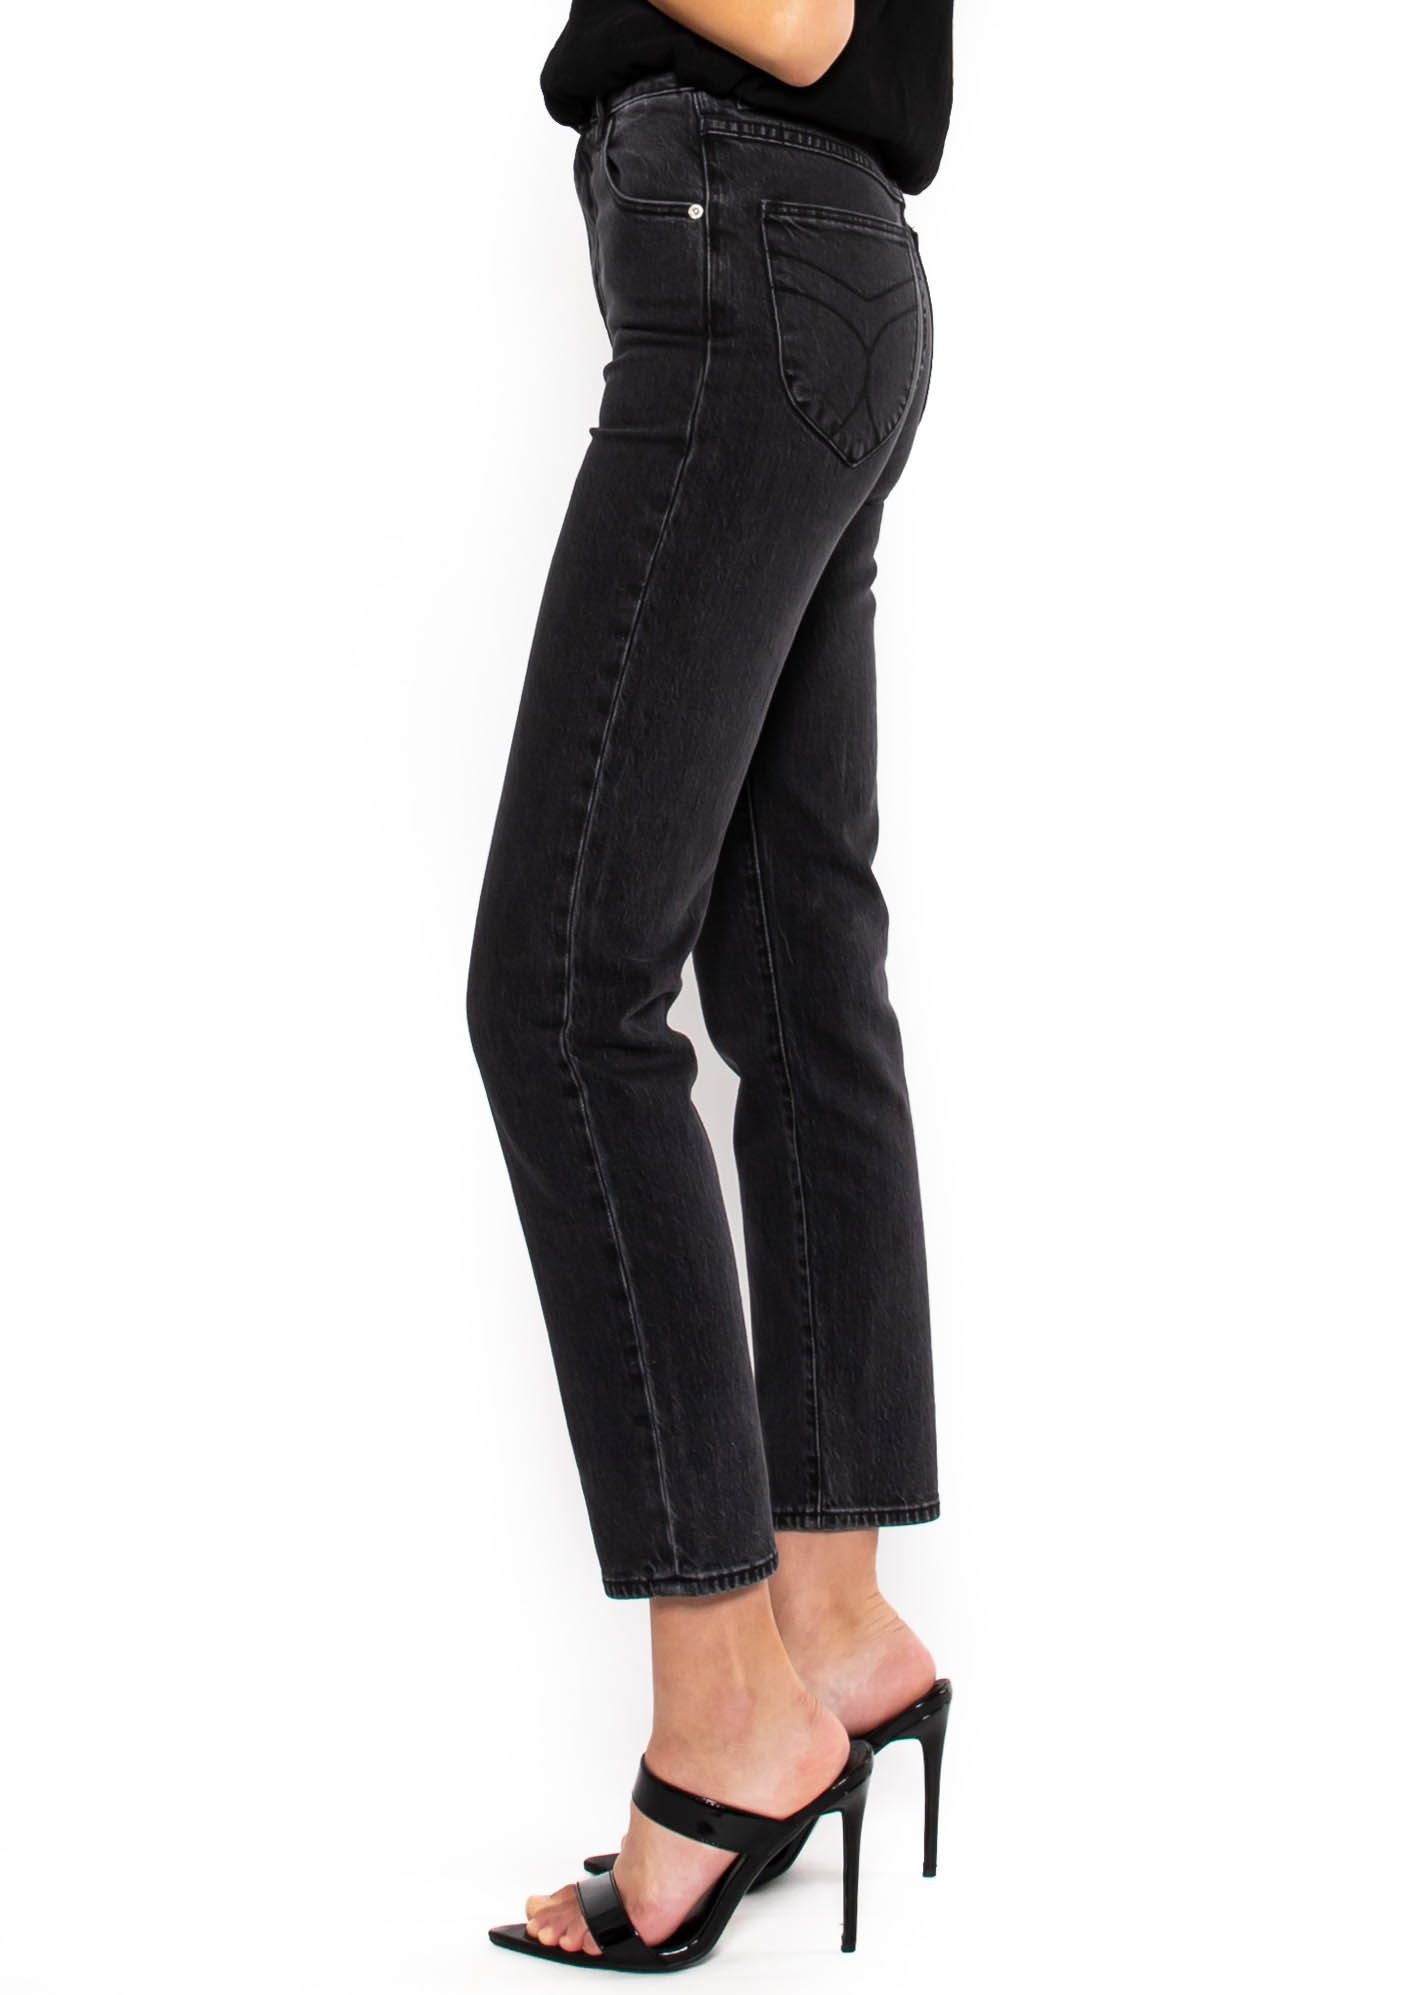 UPTOWN STYLE  FADED BLACK JEANS